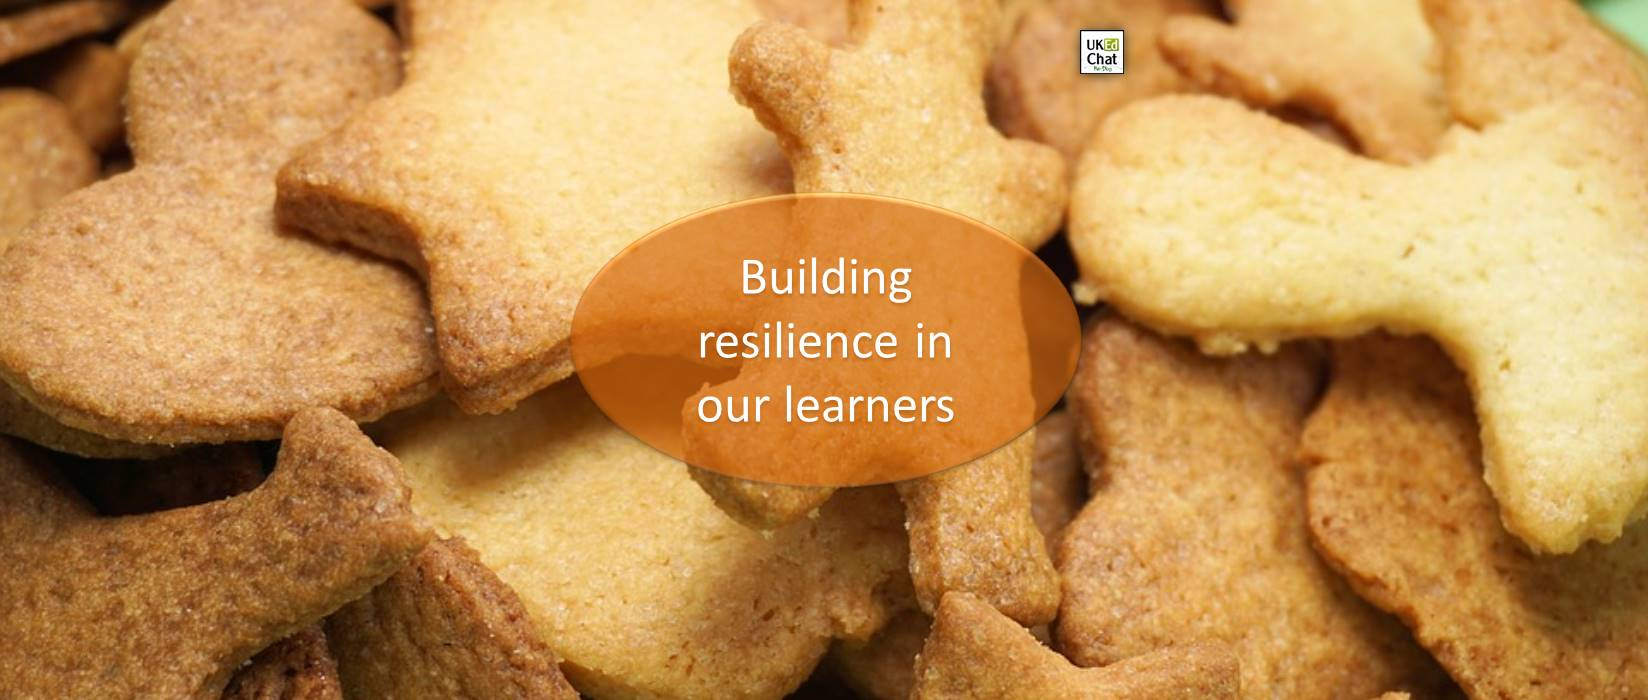 Building Resilience in our Learners by @cillachinchilla – UKEdChat